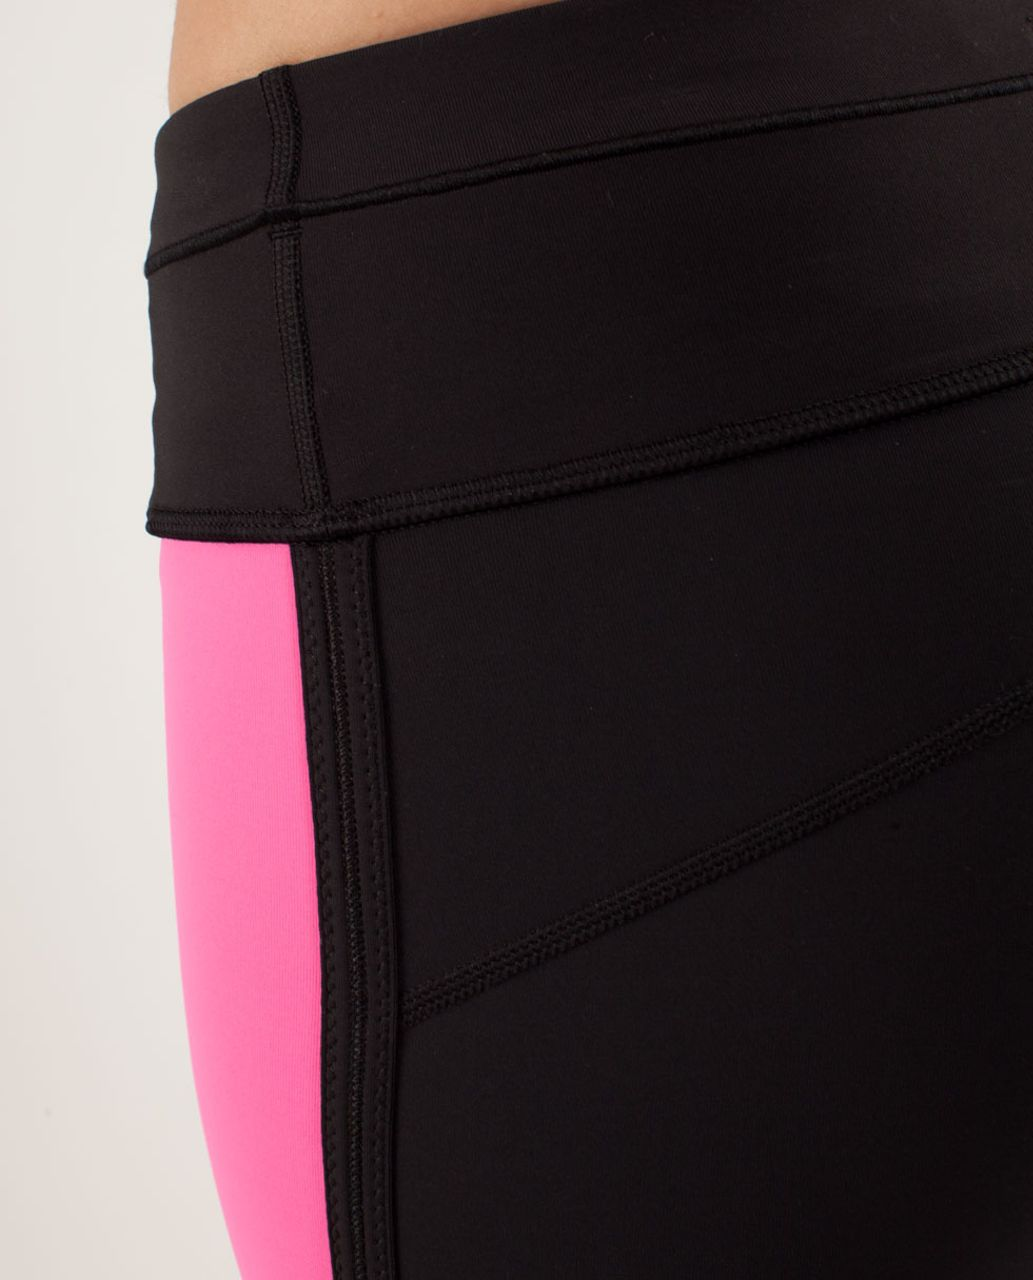 Lululemon Run:  Pace Tight - Pinkelicious / Black / Parfait Pink